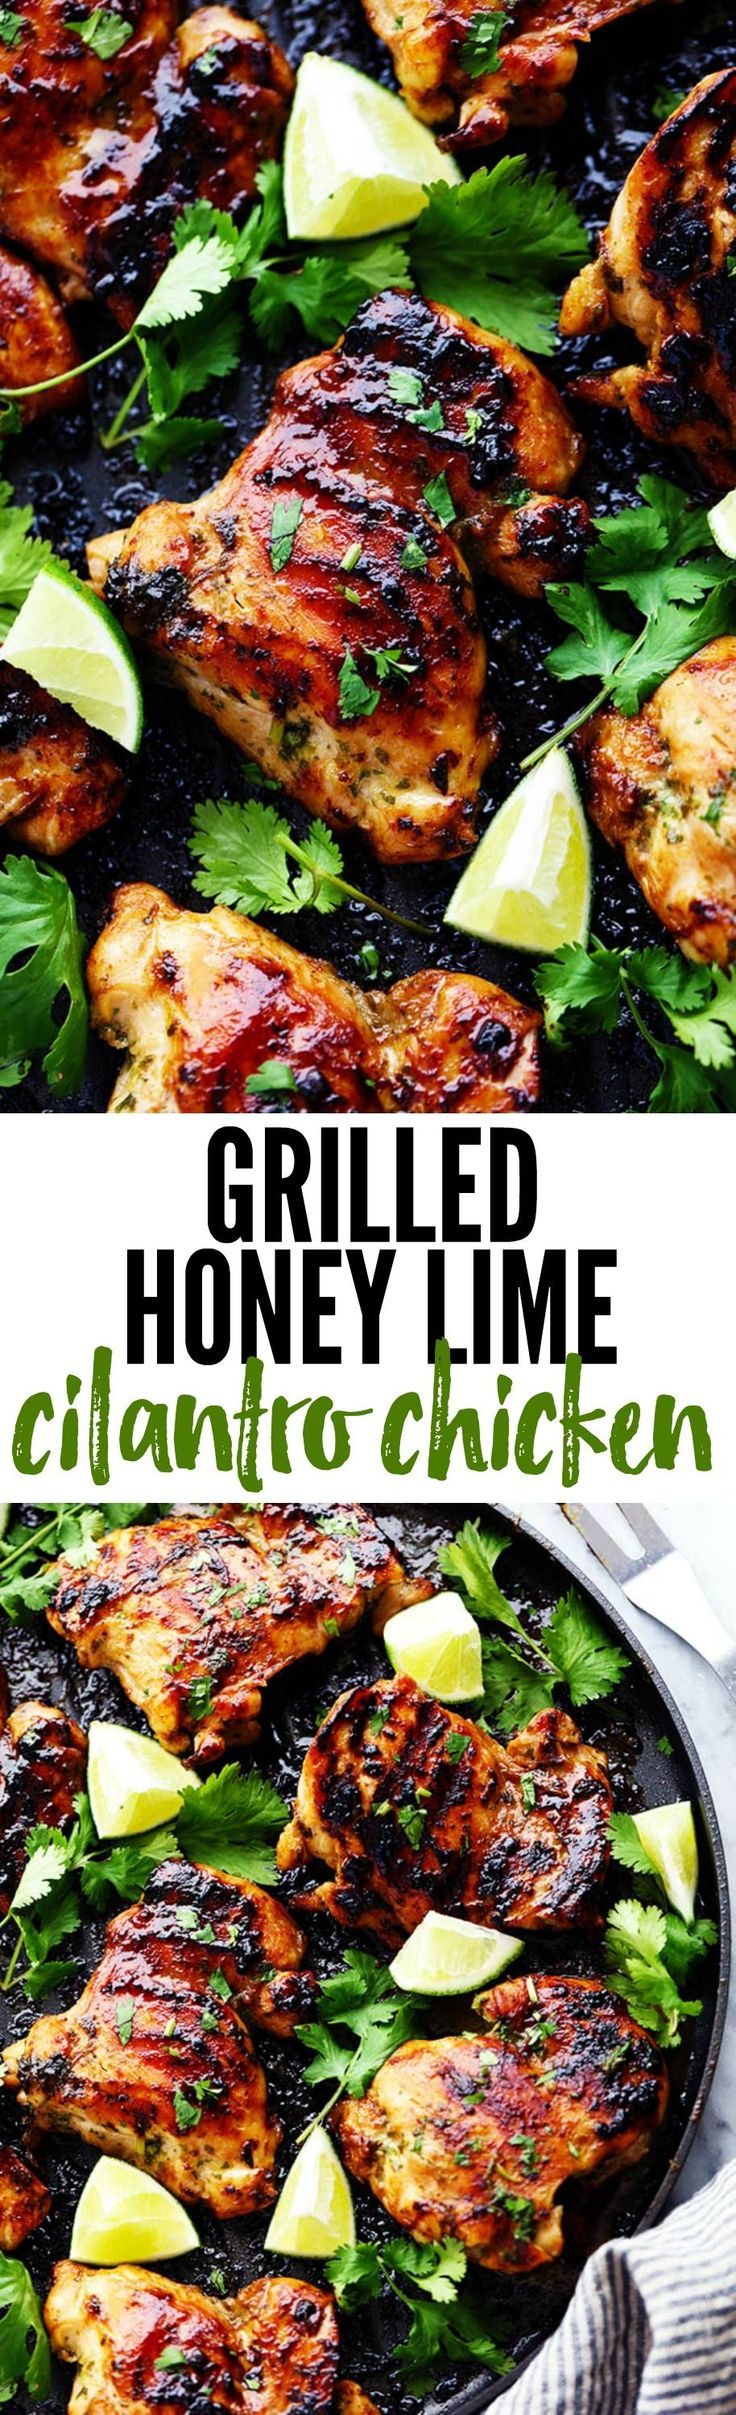 Perfectly grilled tender and juicy chicken marinated in a honey lime cilantro marinade. The flavor of this chicken is incredible! Honey + Lime + Cilantro = one